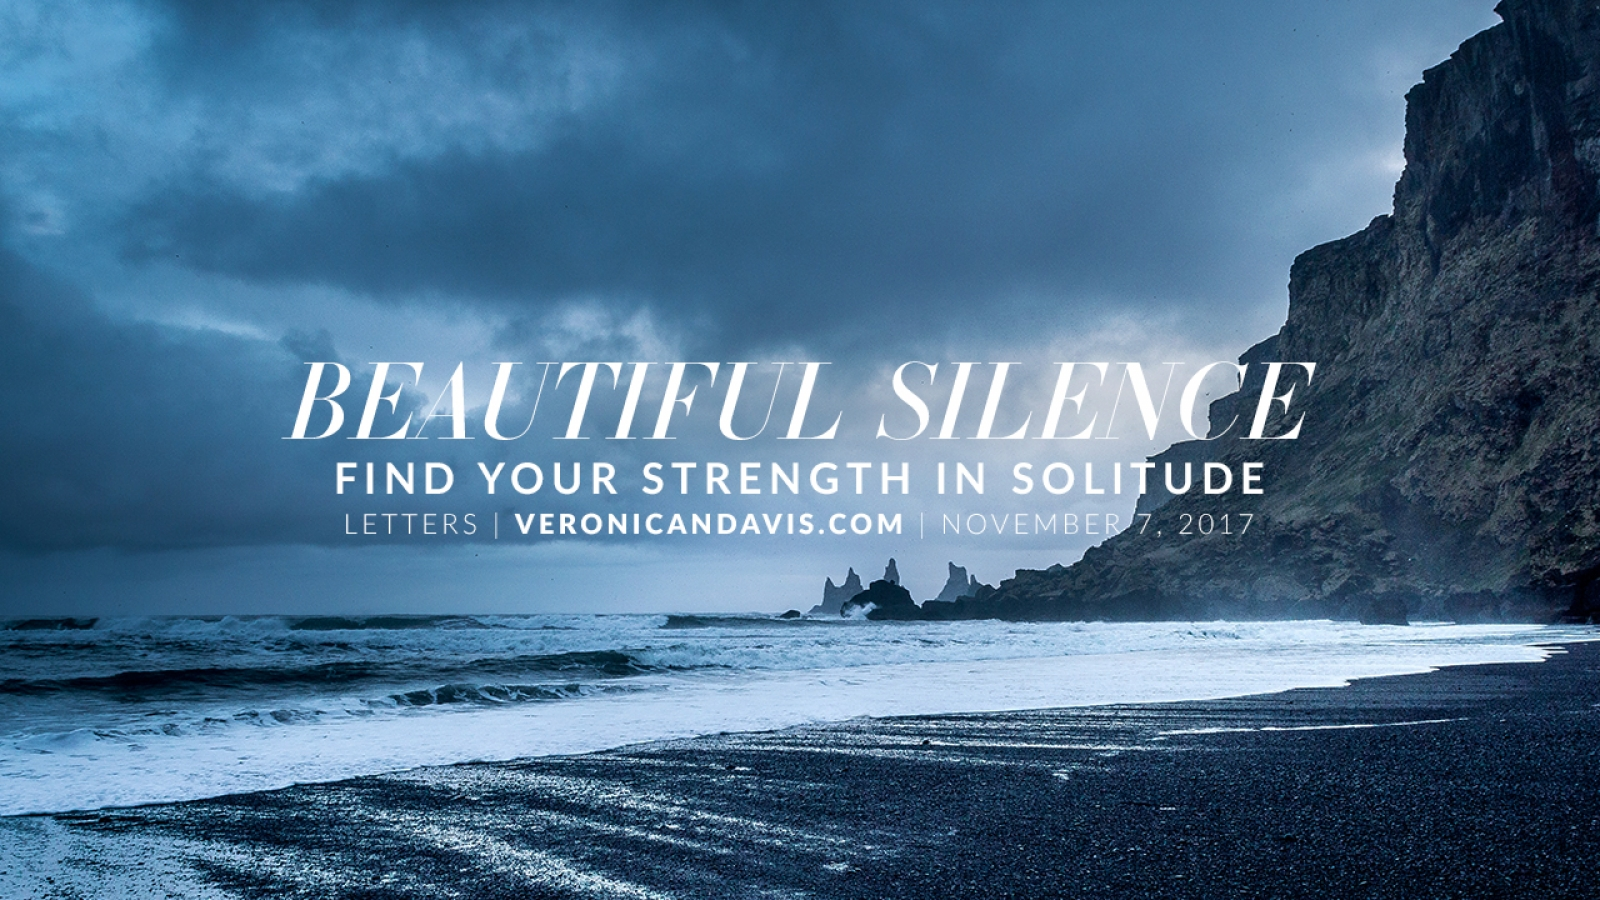 Beautiful Silence Blog Entry - Find Your Strength in Solitude by Veronica N. Davis